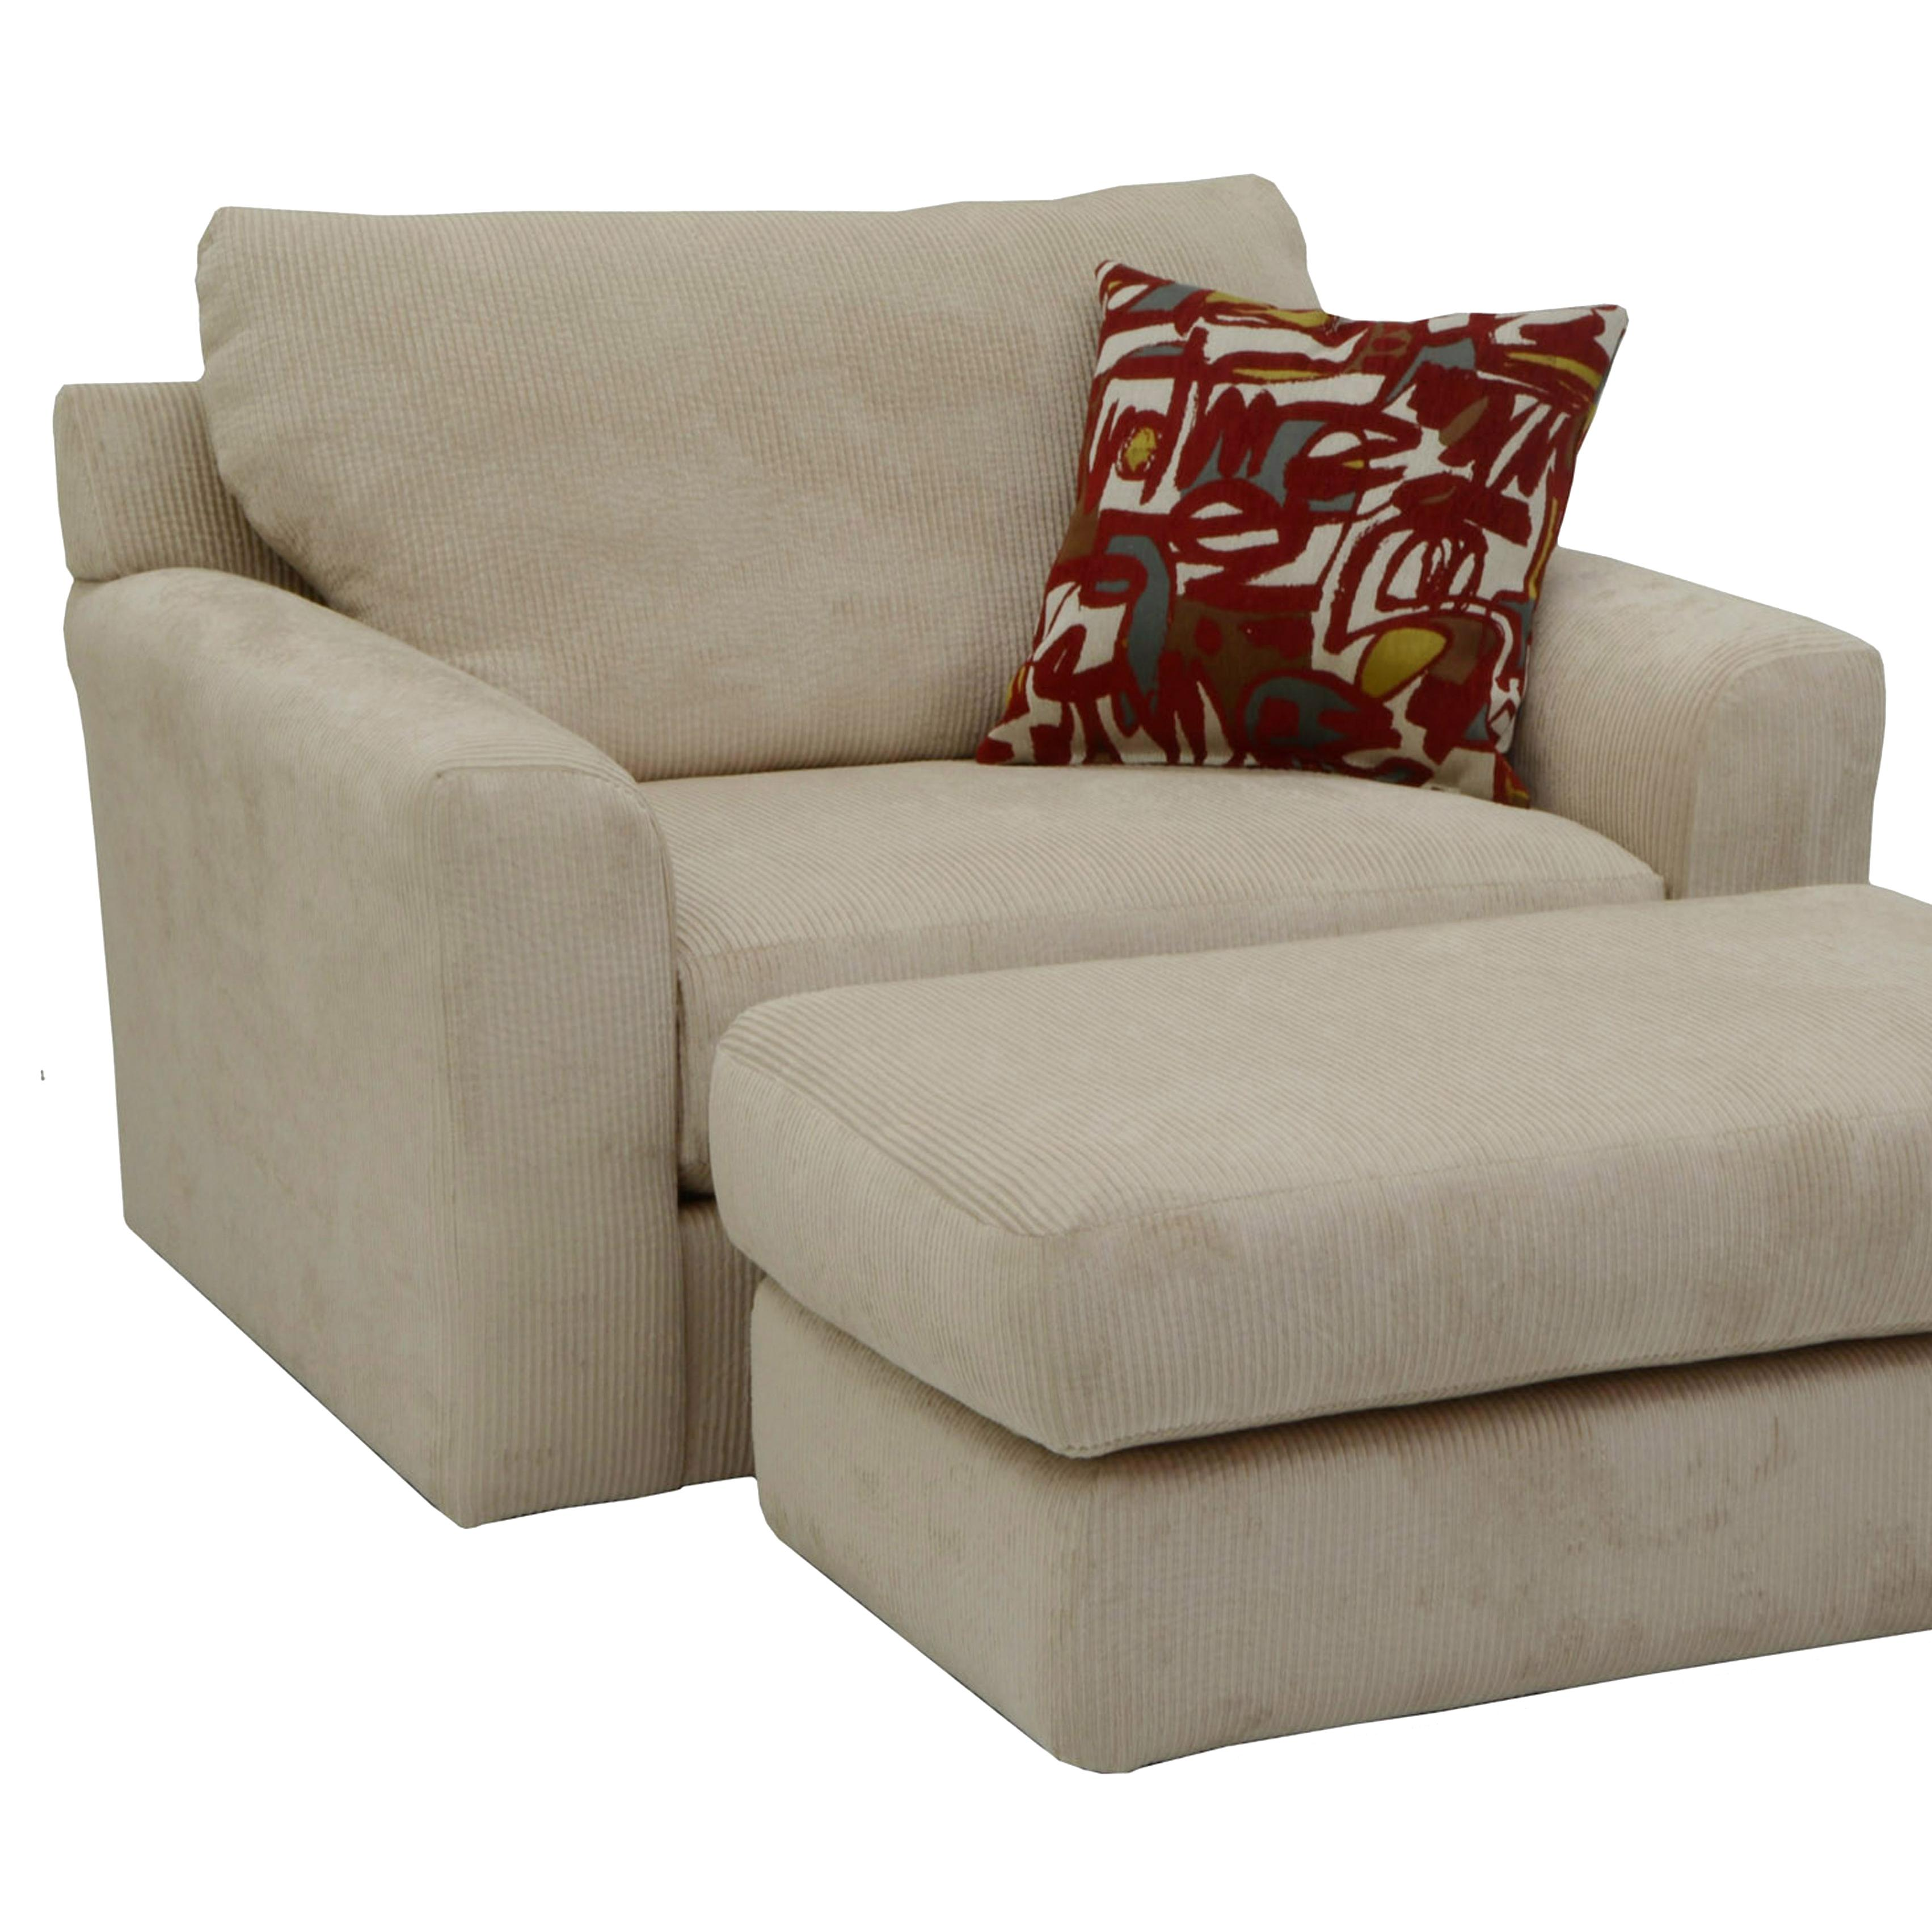 Jackson Furniture Sutton Chair and a Half with Casual